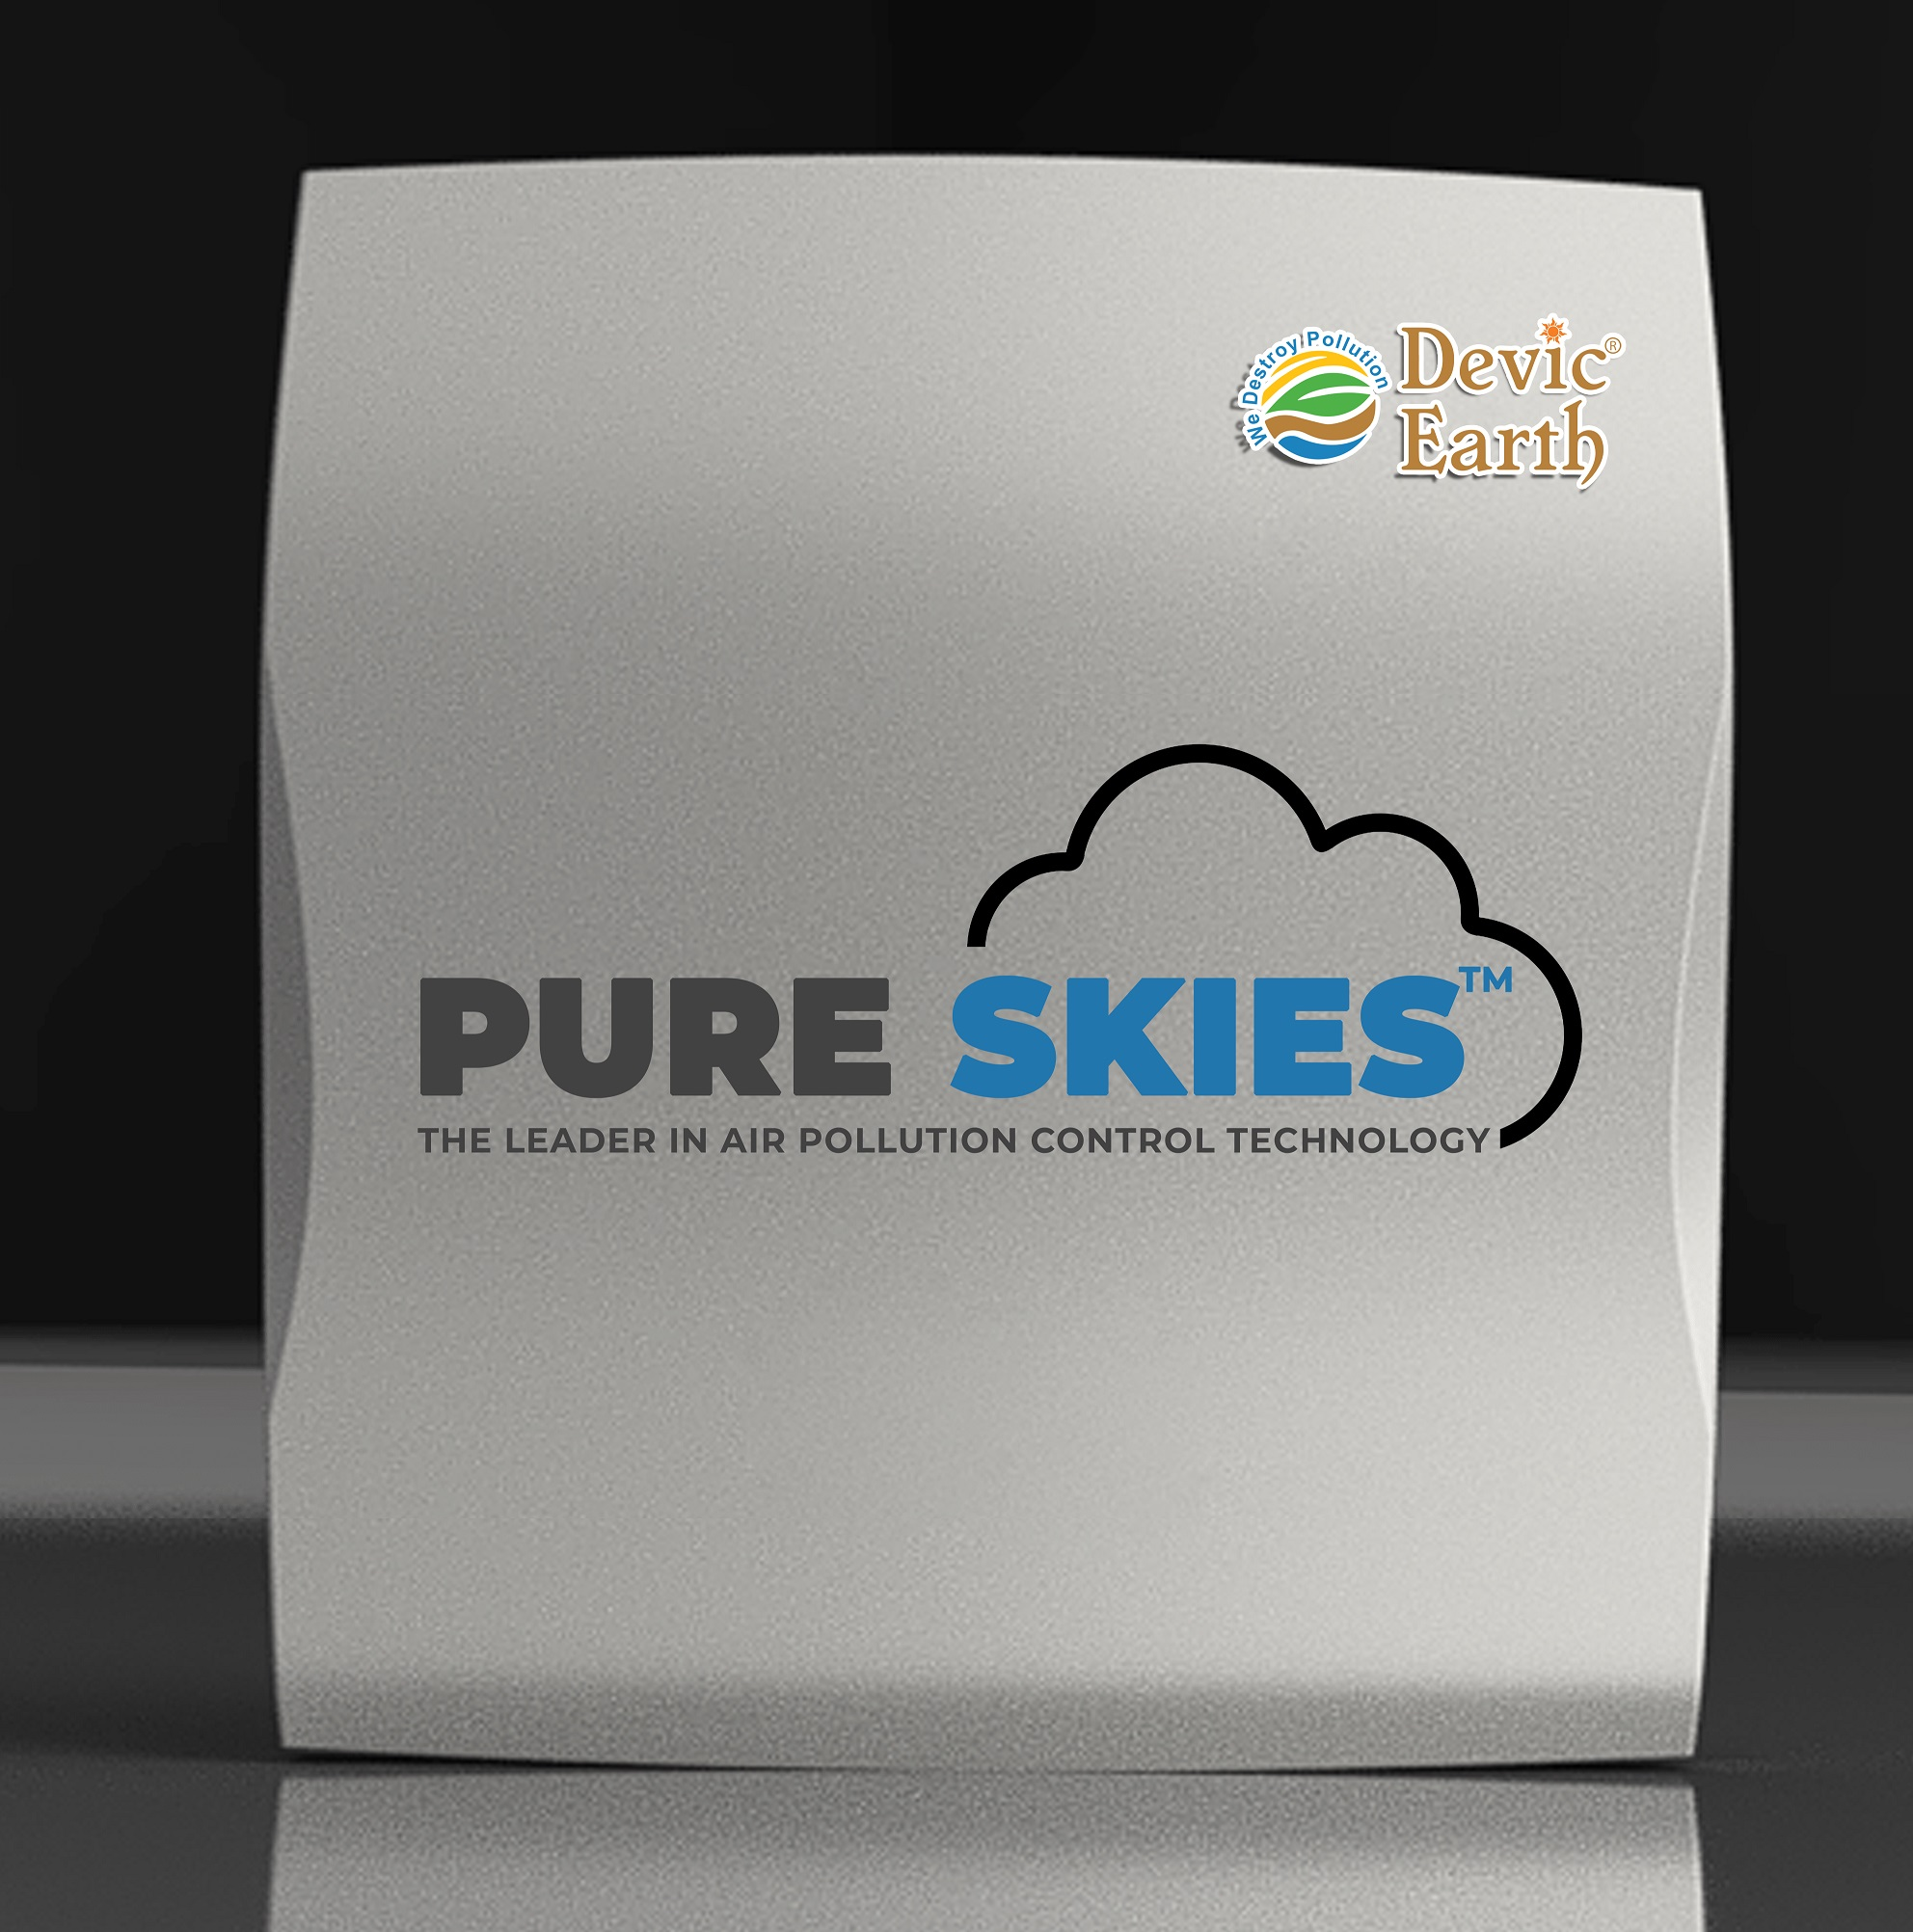 Devic Earth launches world's first ever Clean-Air-as-a-Service plan to control pollution